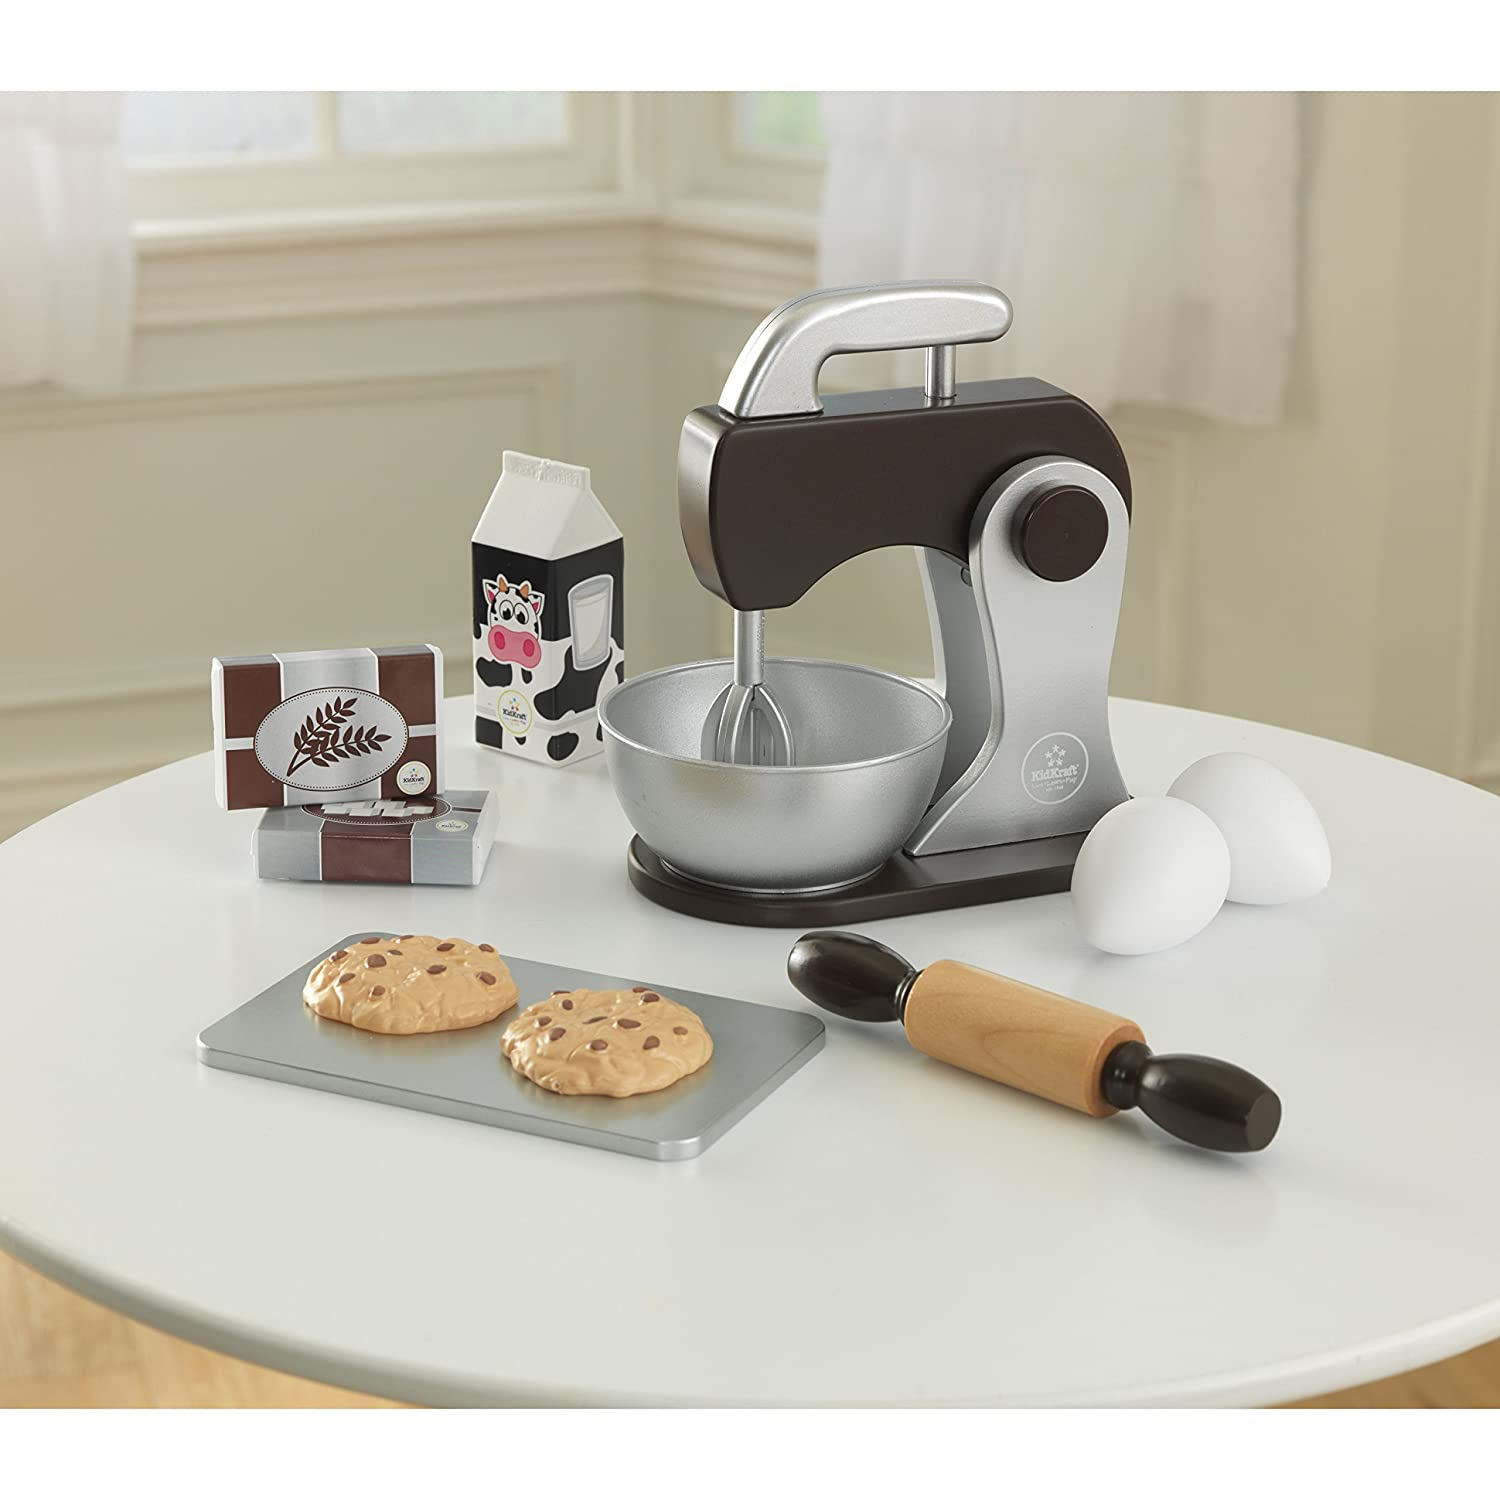 Espresso Role Play Toys for The Kitchen KidKraft Childrens Baking Set